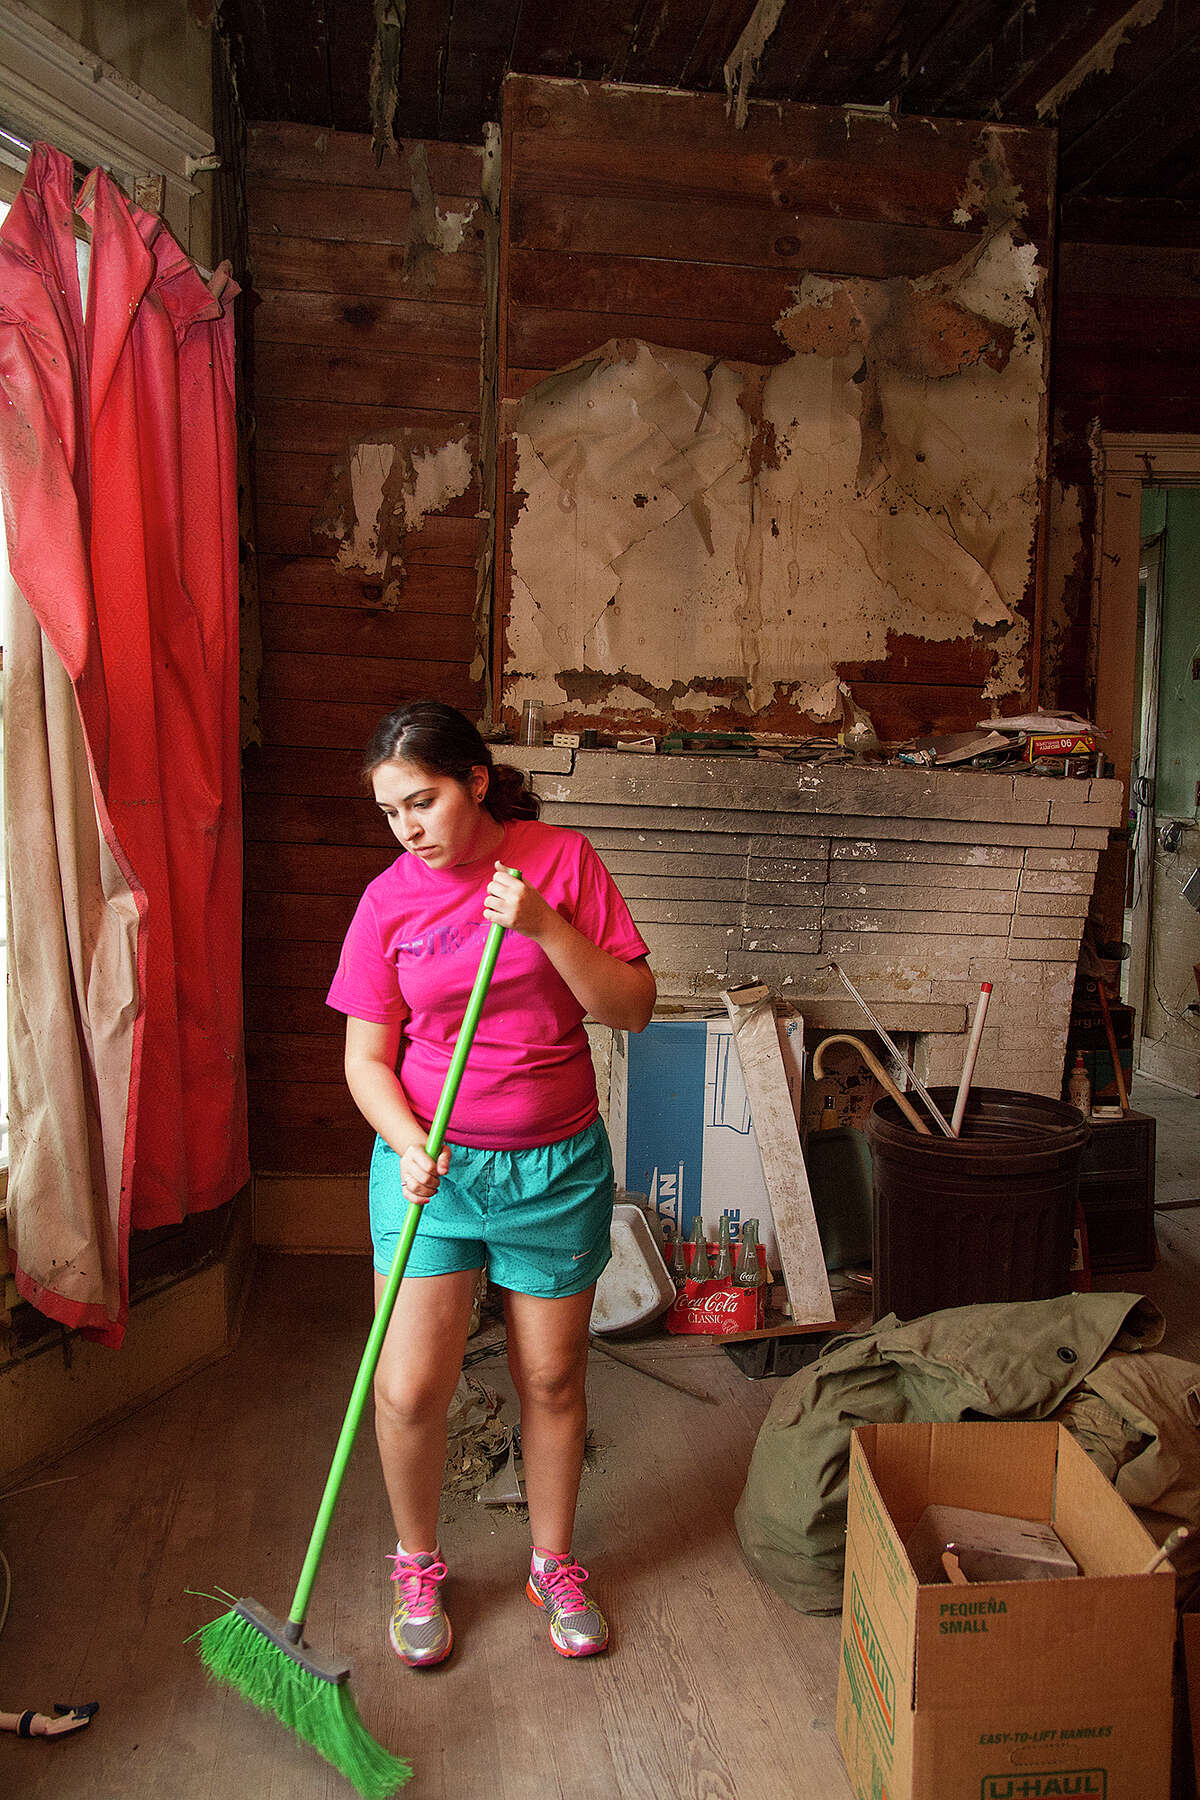 Megan Lenz helps clean up Miguel Calzada's home, Saturday, Dec. 13, 2014 so they can move forward with renovations.